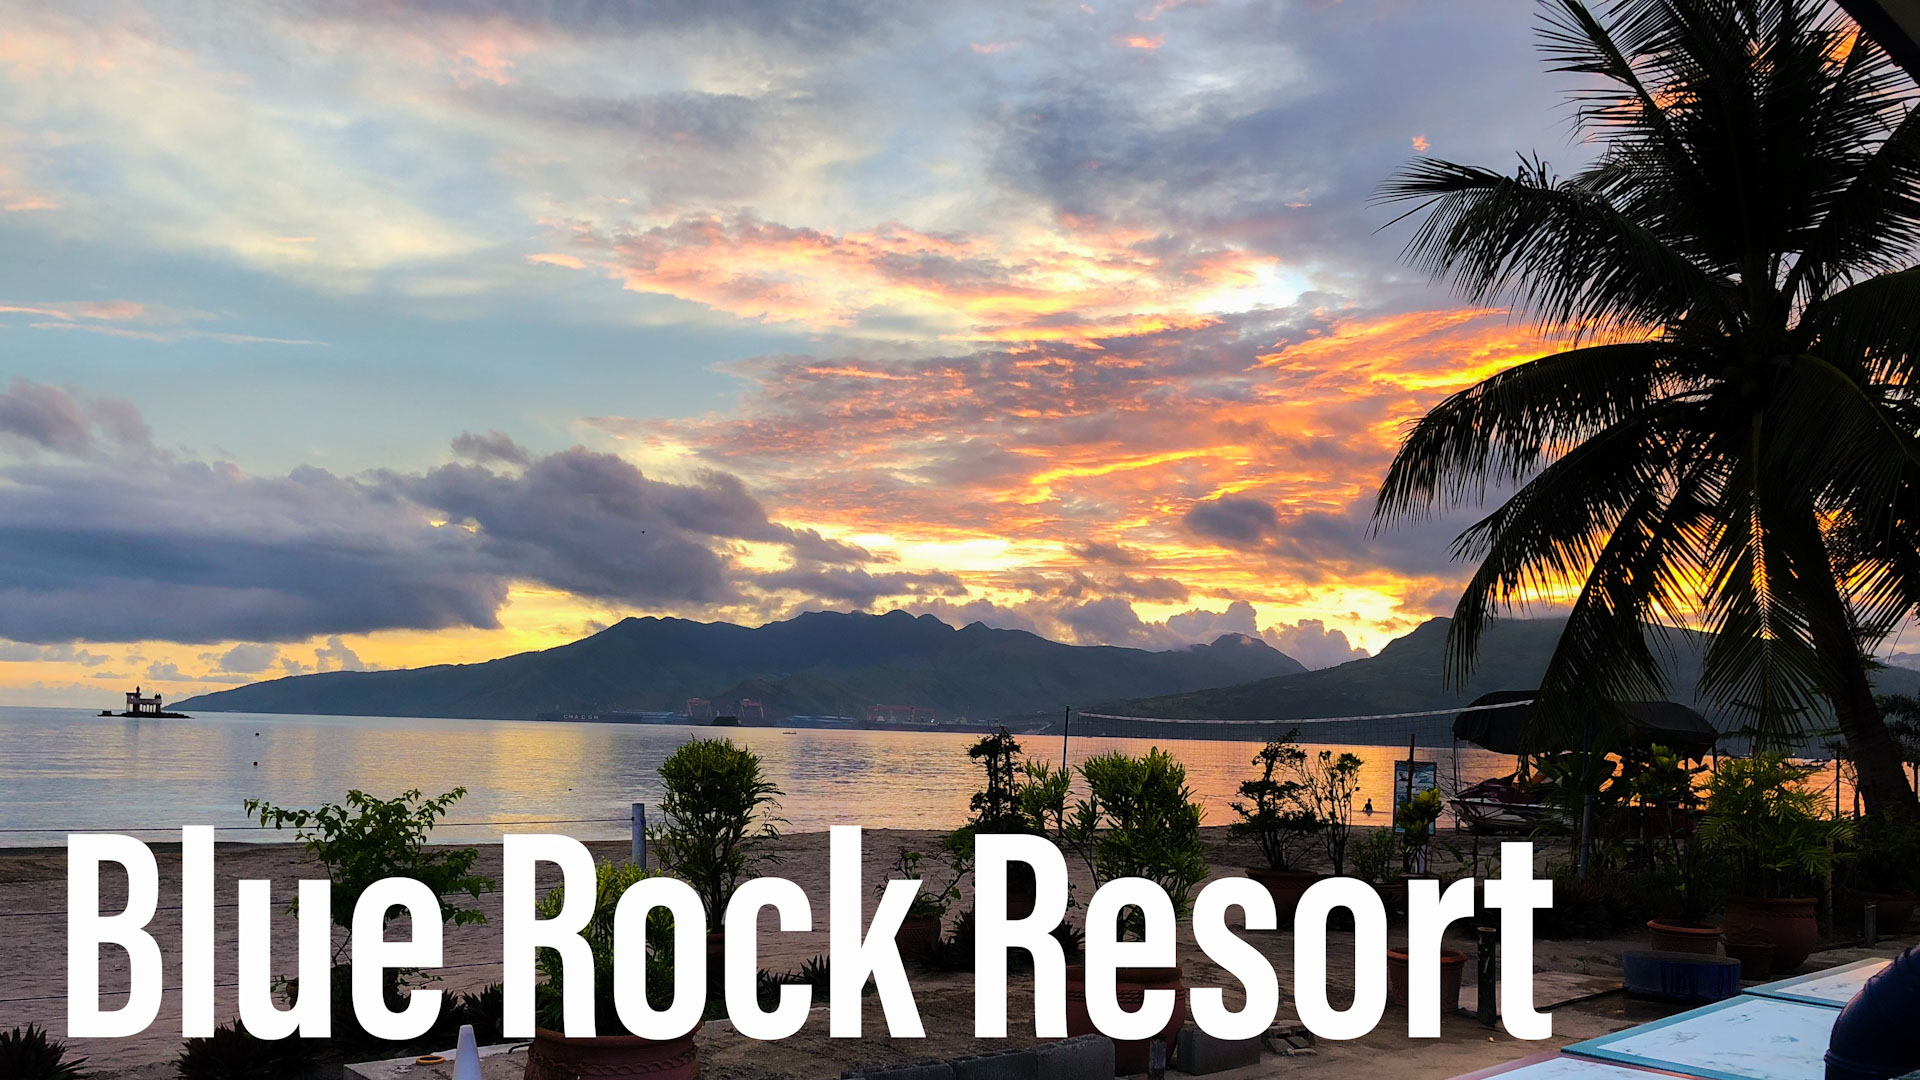 Blue Rock Resort - Subic Bay, Philippines